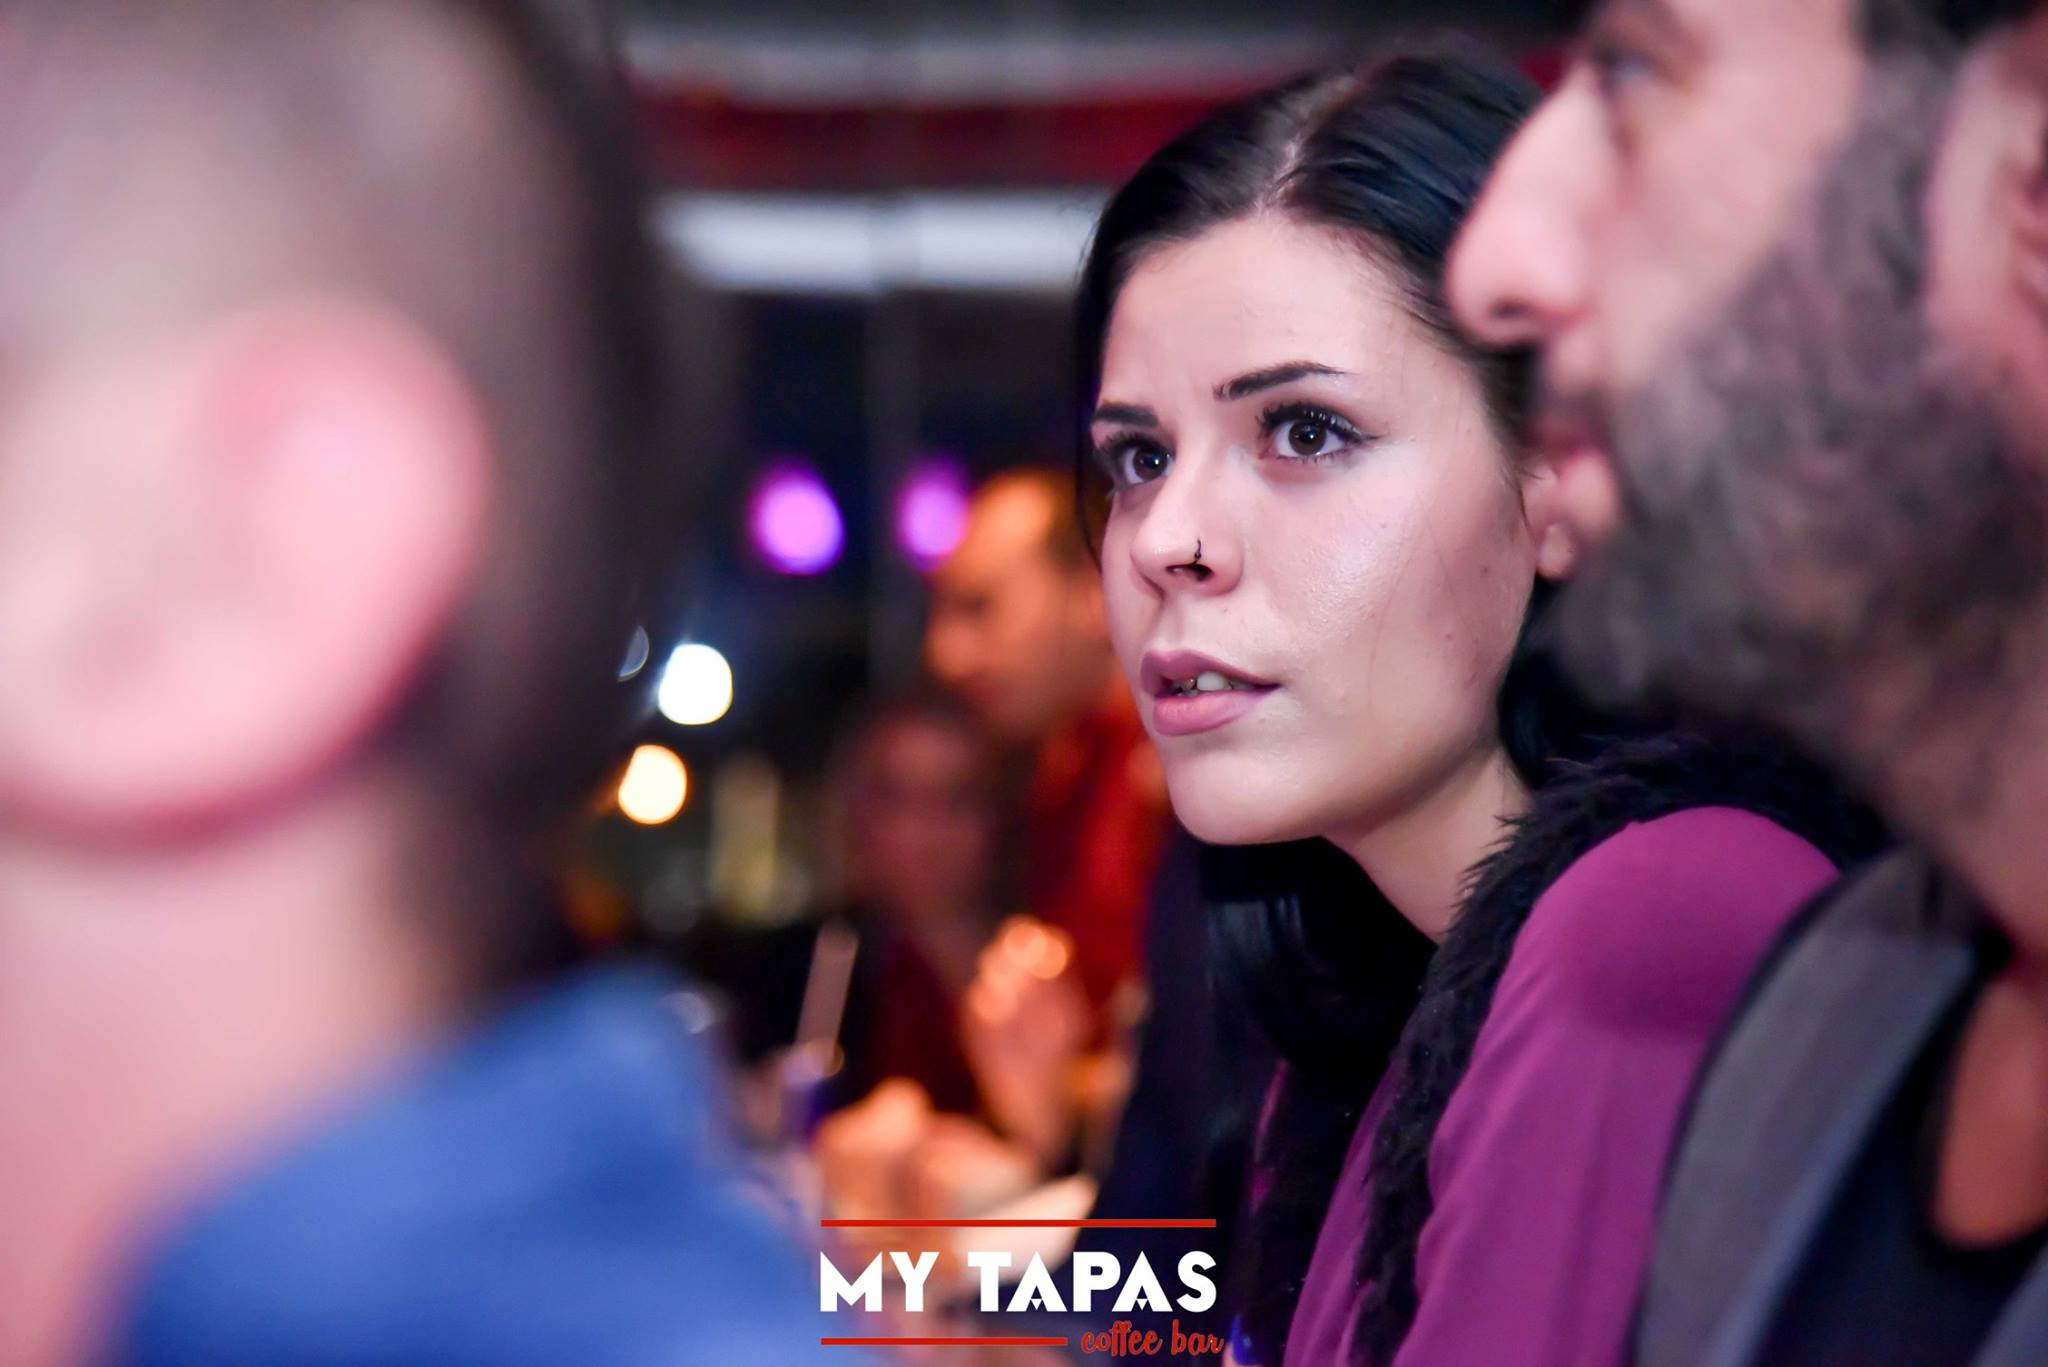 46. 22519878 1576370689049805 1011004699905941948 o 1 - My Live Tuesdays στο MY Tapas Coffee bar | Τρίτη 17.10 Part 1/2